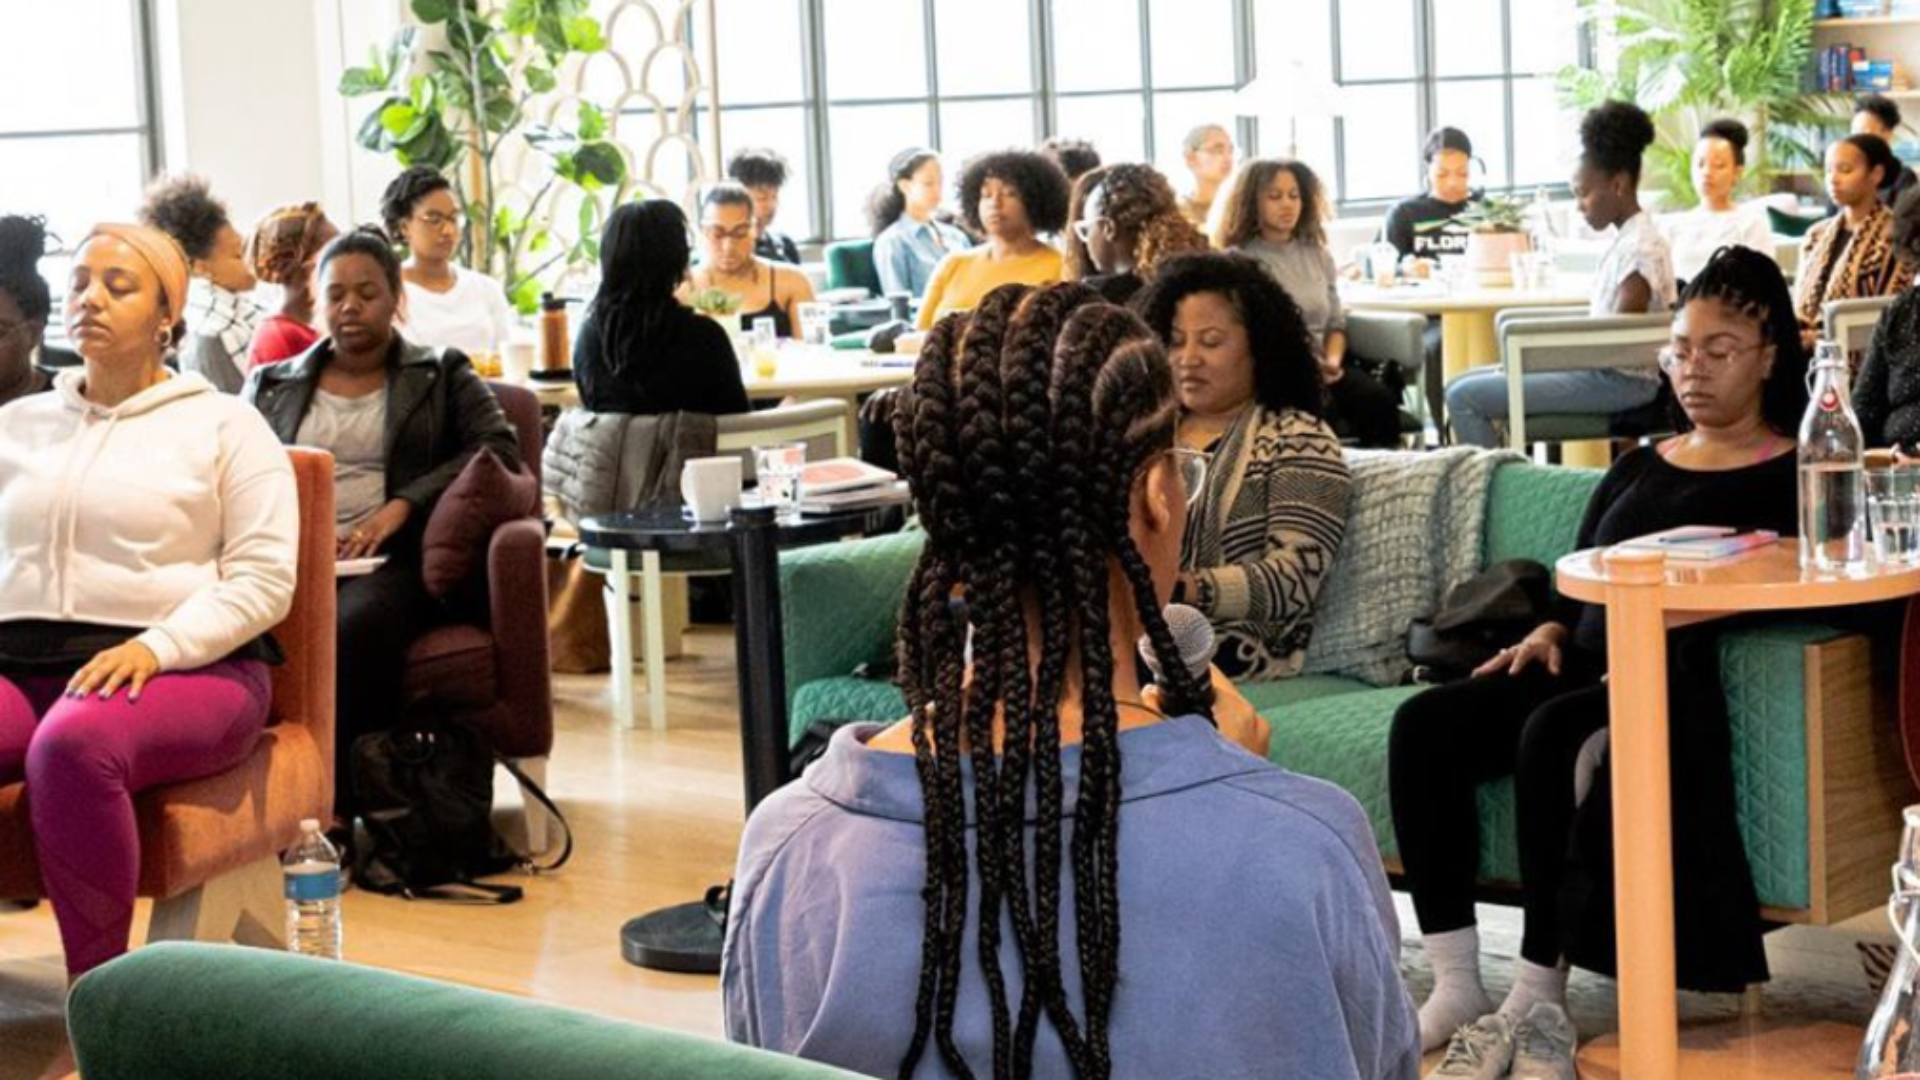 Black Girl In Om To Host Their Annual Wellness Day In San Francisco